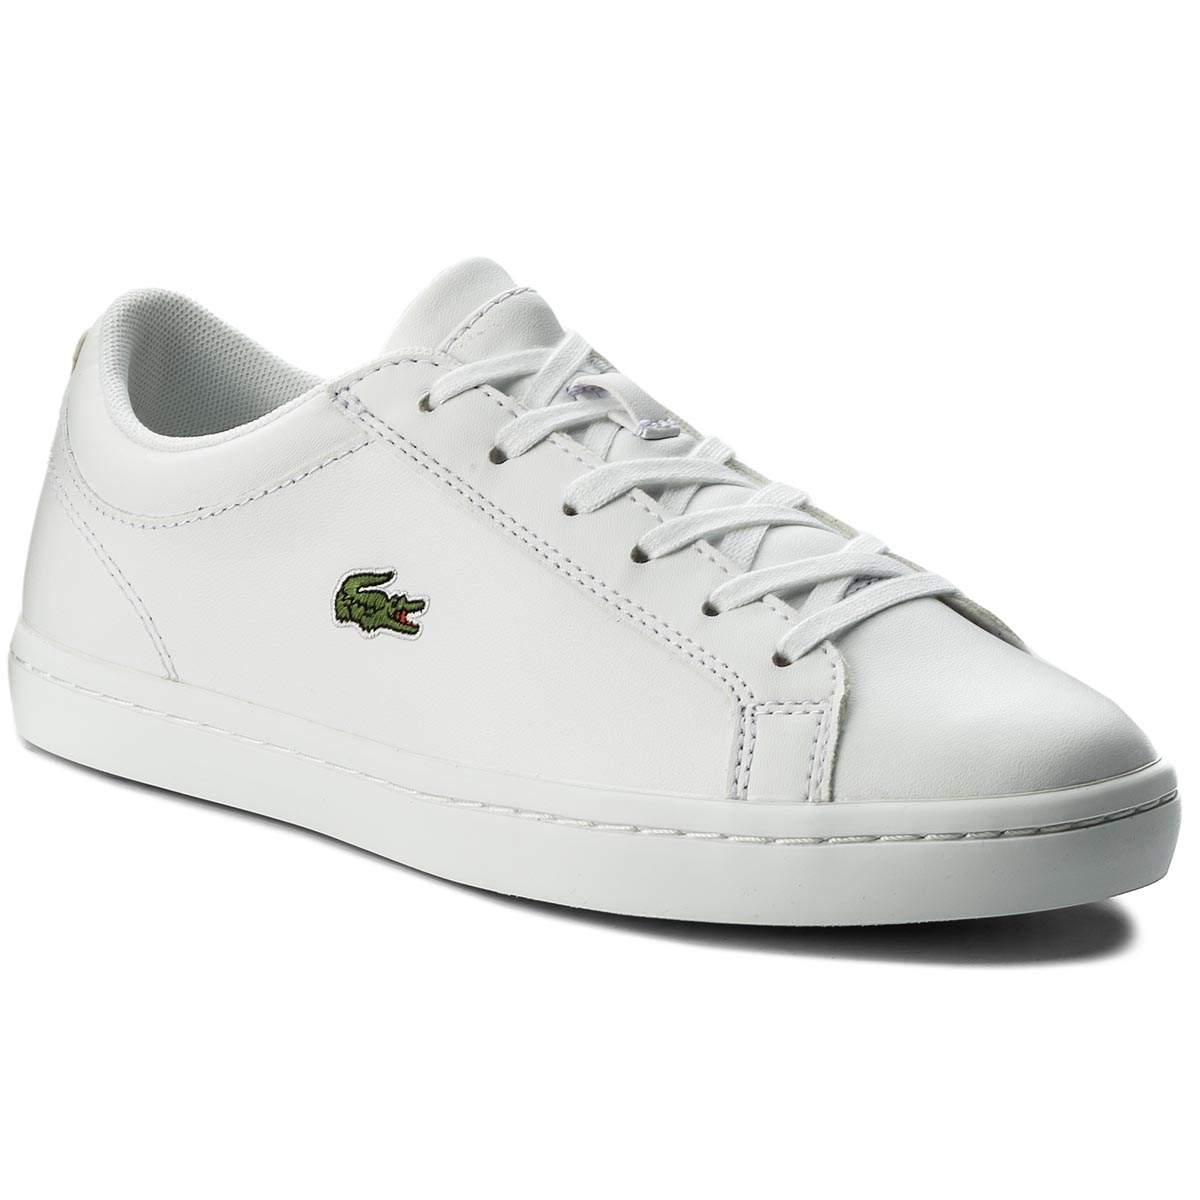 0b855a73f34af Sneakersy LACOSTE - Straightset Bl 1 Spw 7-32SPW0133001 Wht